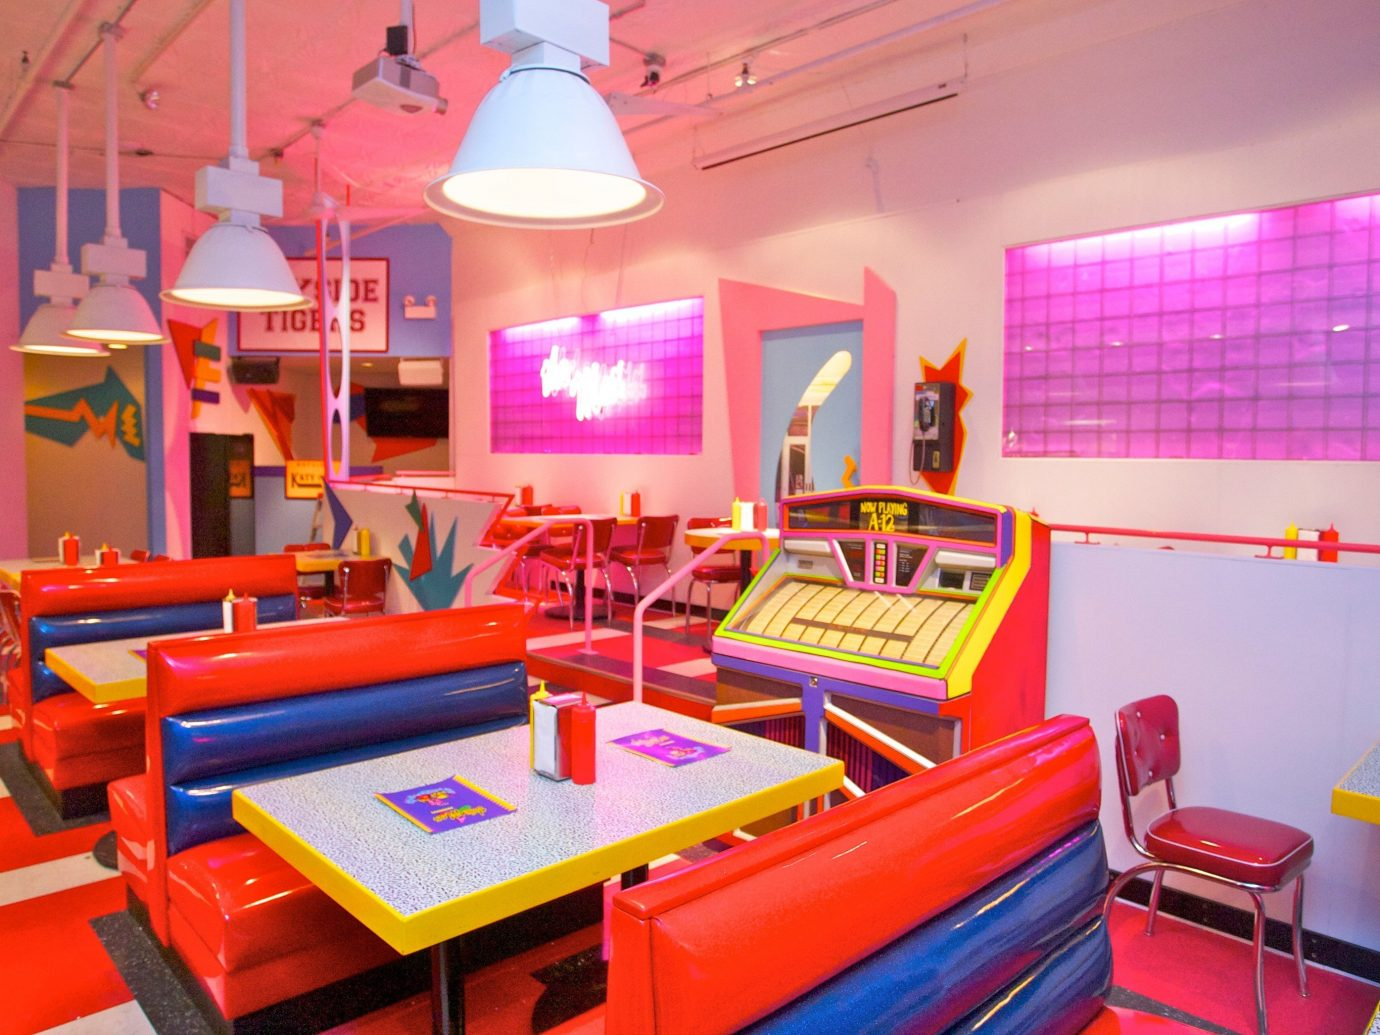 Summer Series indoor floor wall room red recreation room Play Resort interior design bed colorful furniture colored